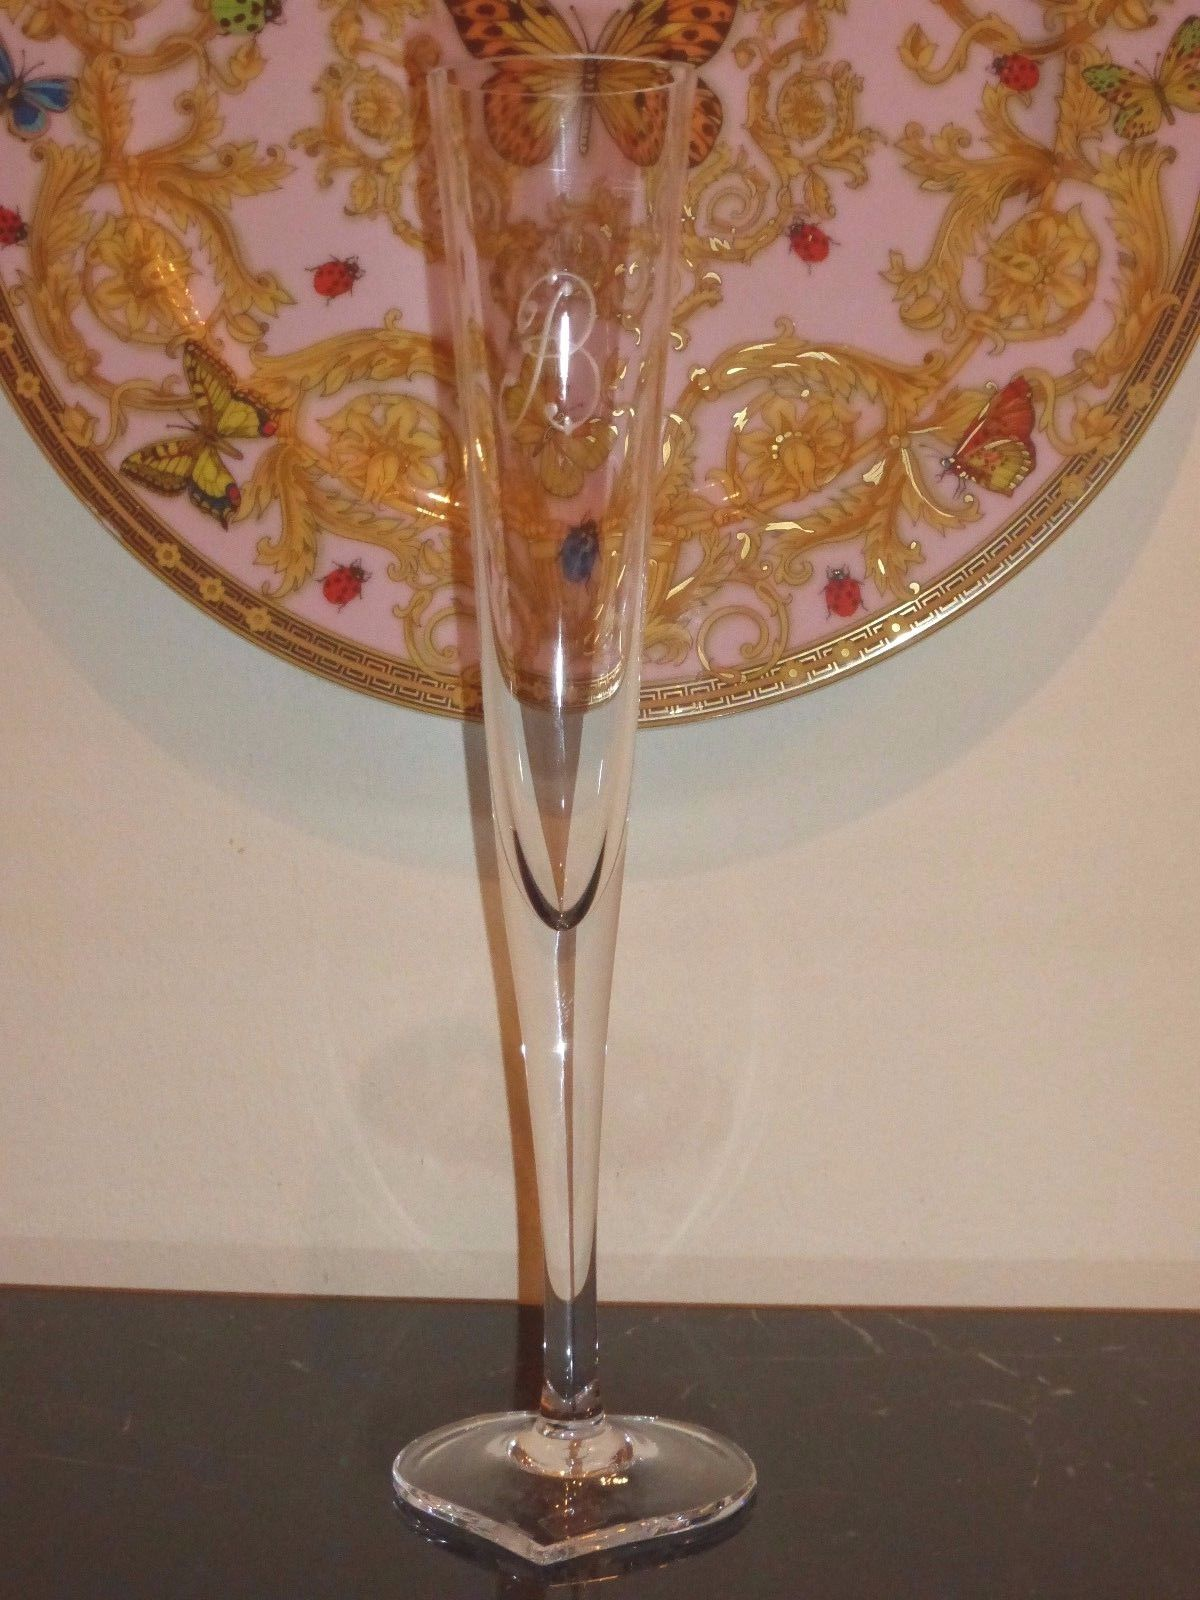 Moser Crystal Duet Champagne Flute 10 3/4